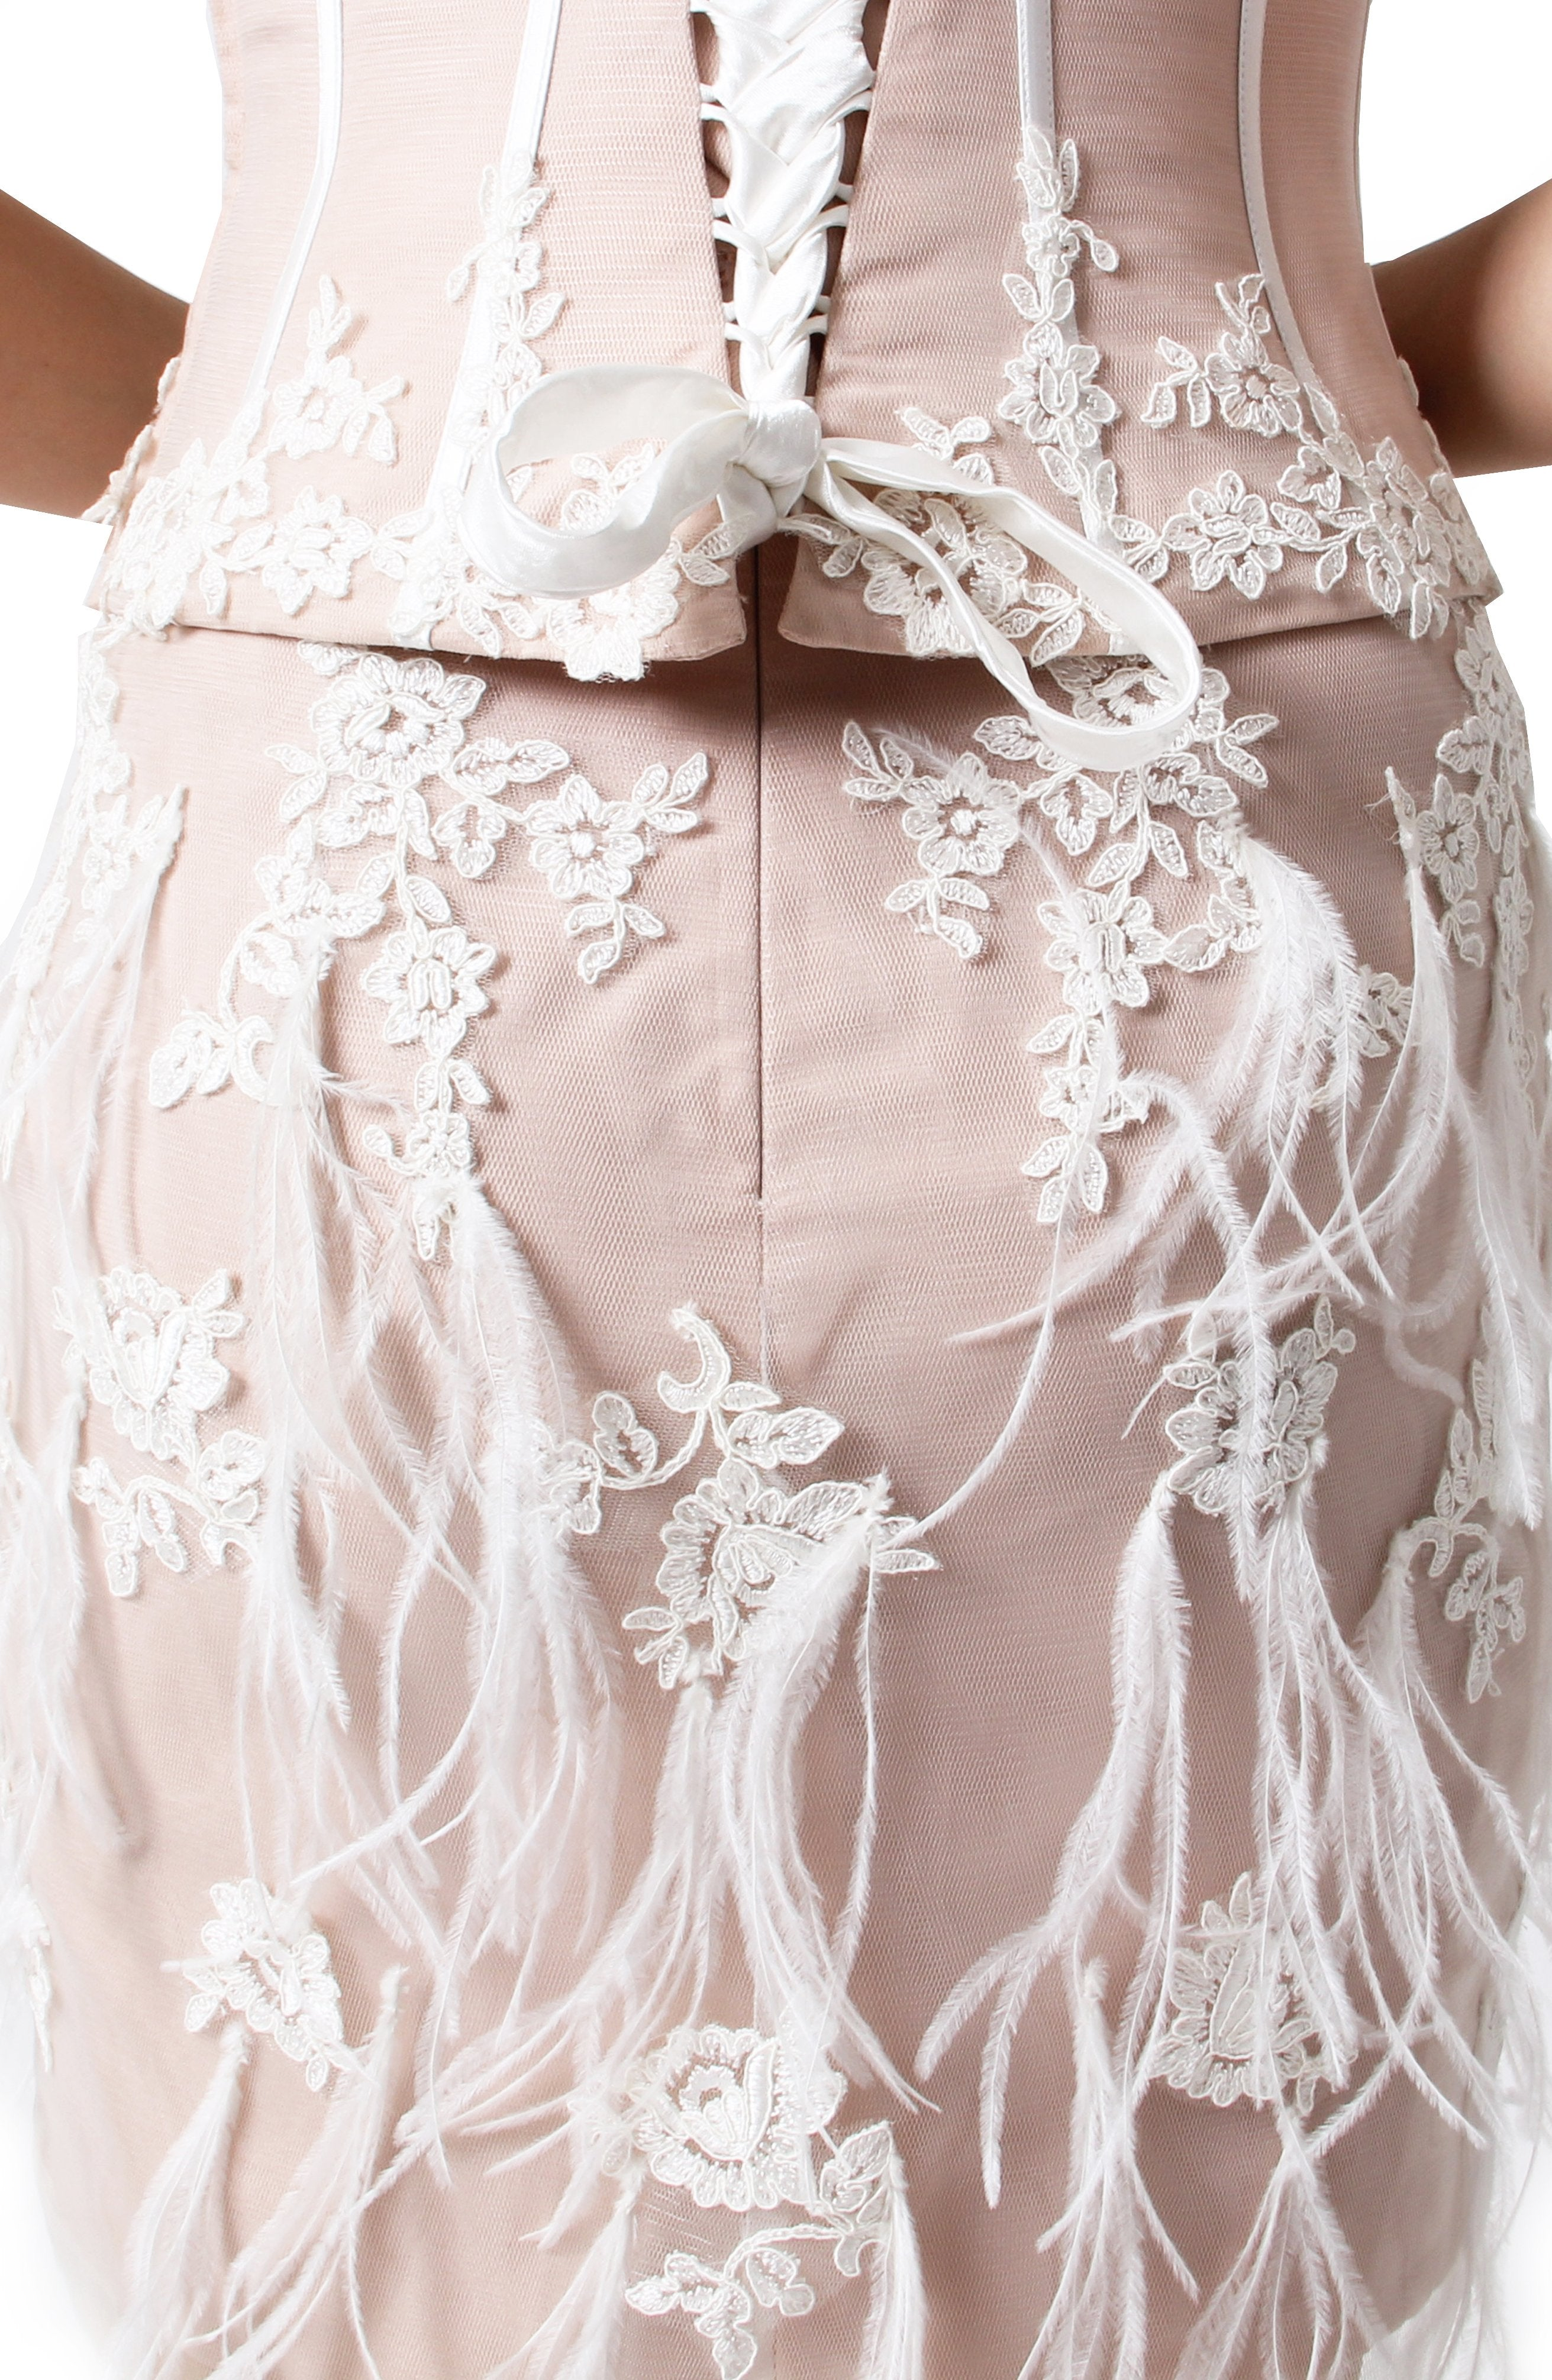 Two Pcs Embroidered Bodice Set